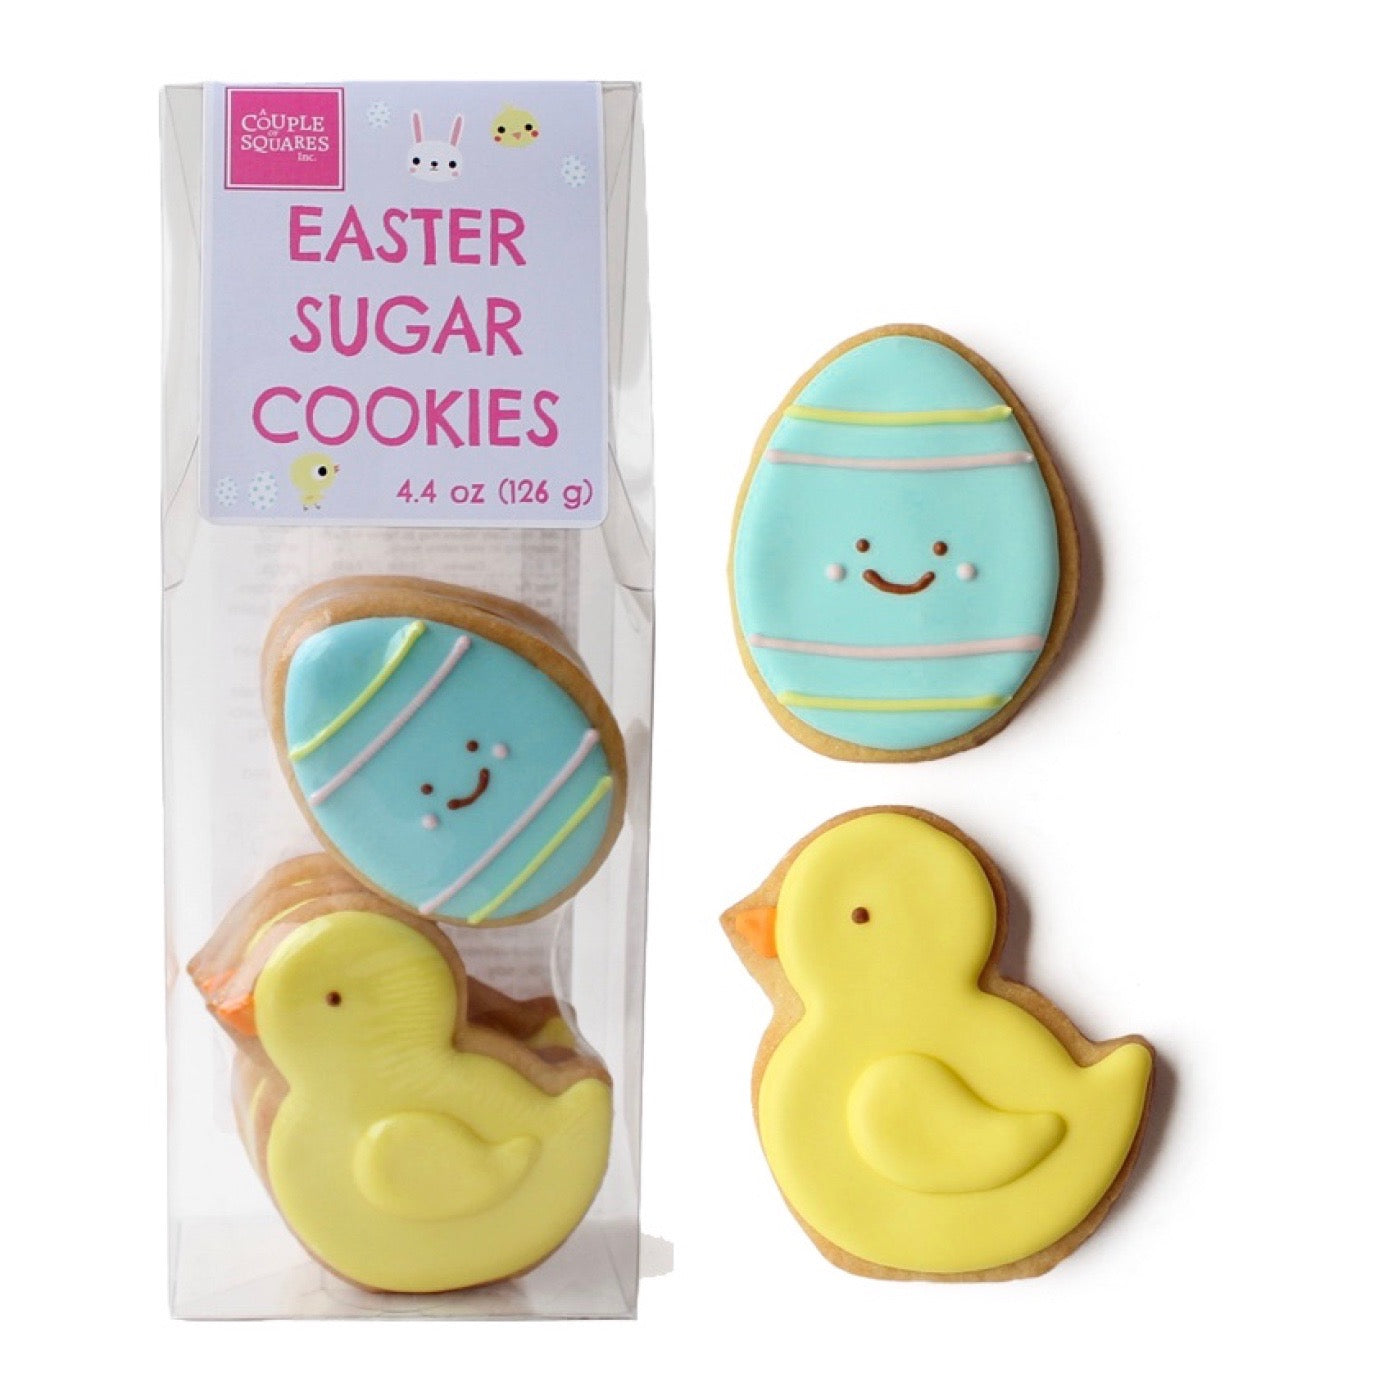 A Couple of Squares Egg and Chic Sugar Cookie Bag  | Le Petite Putti Celebrations Canada